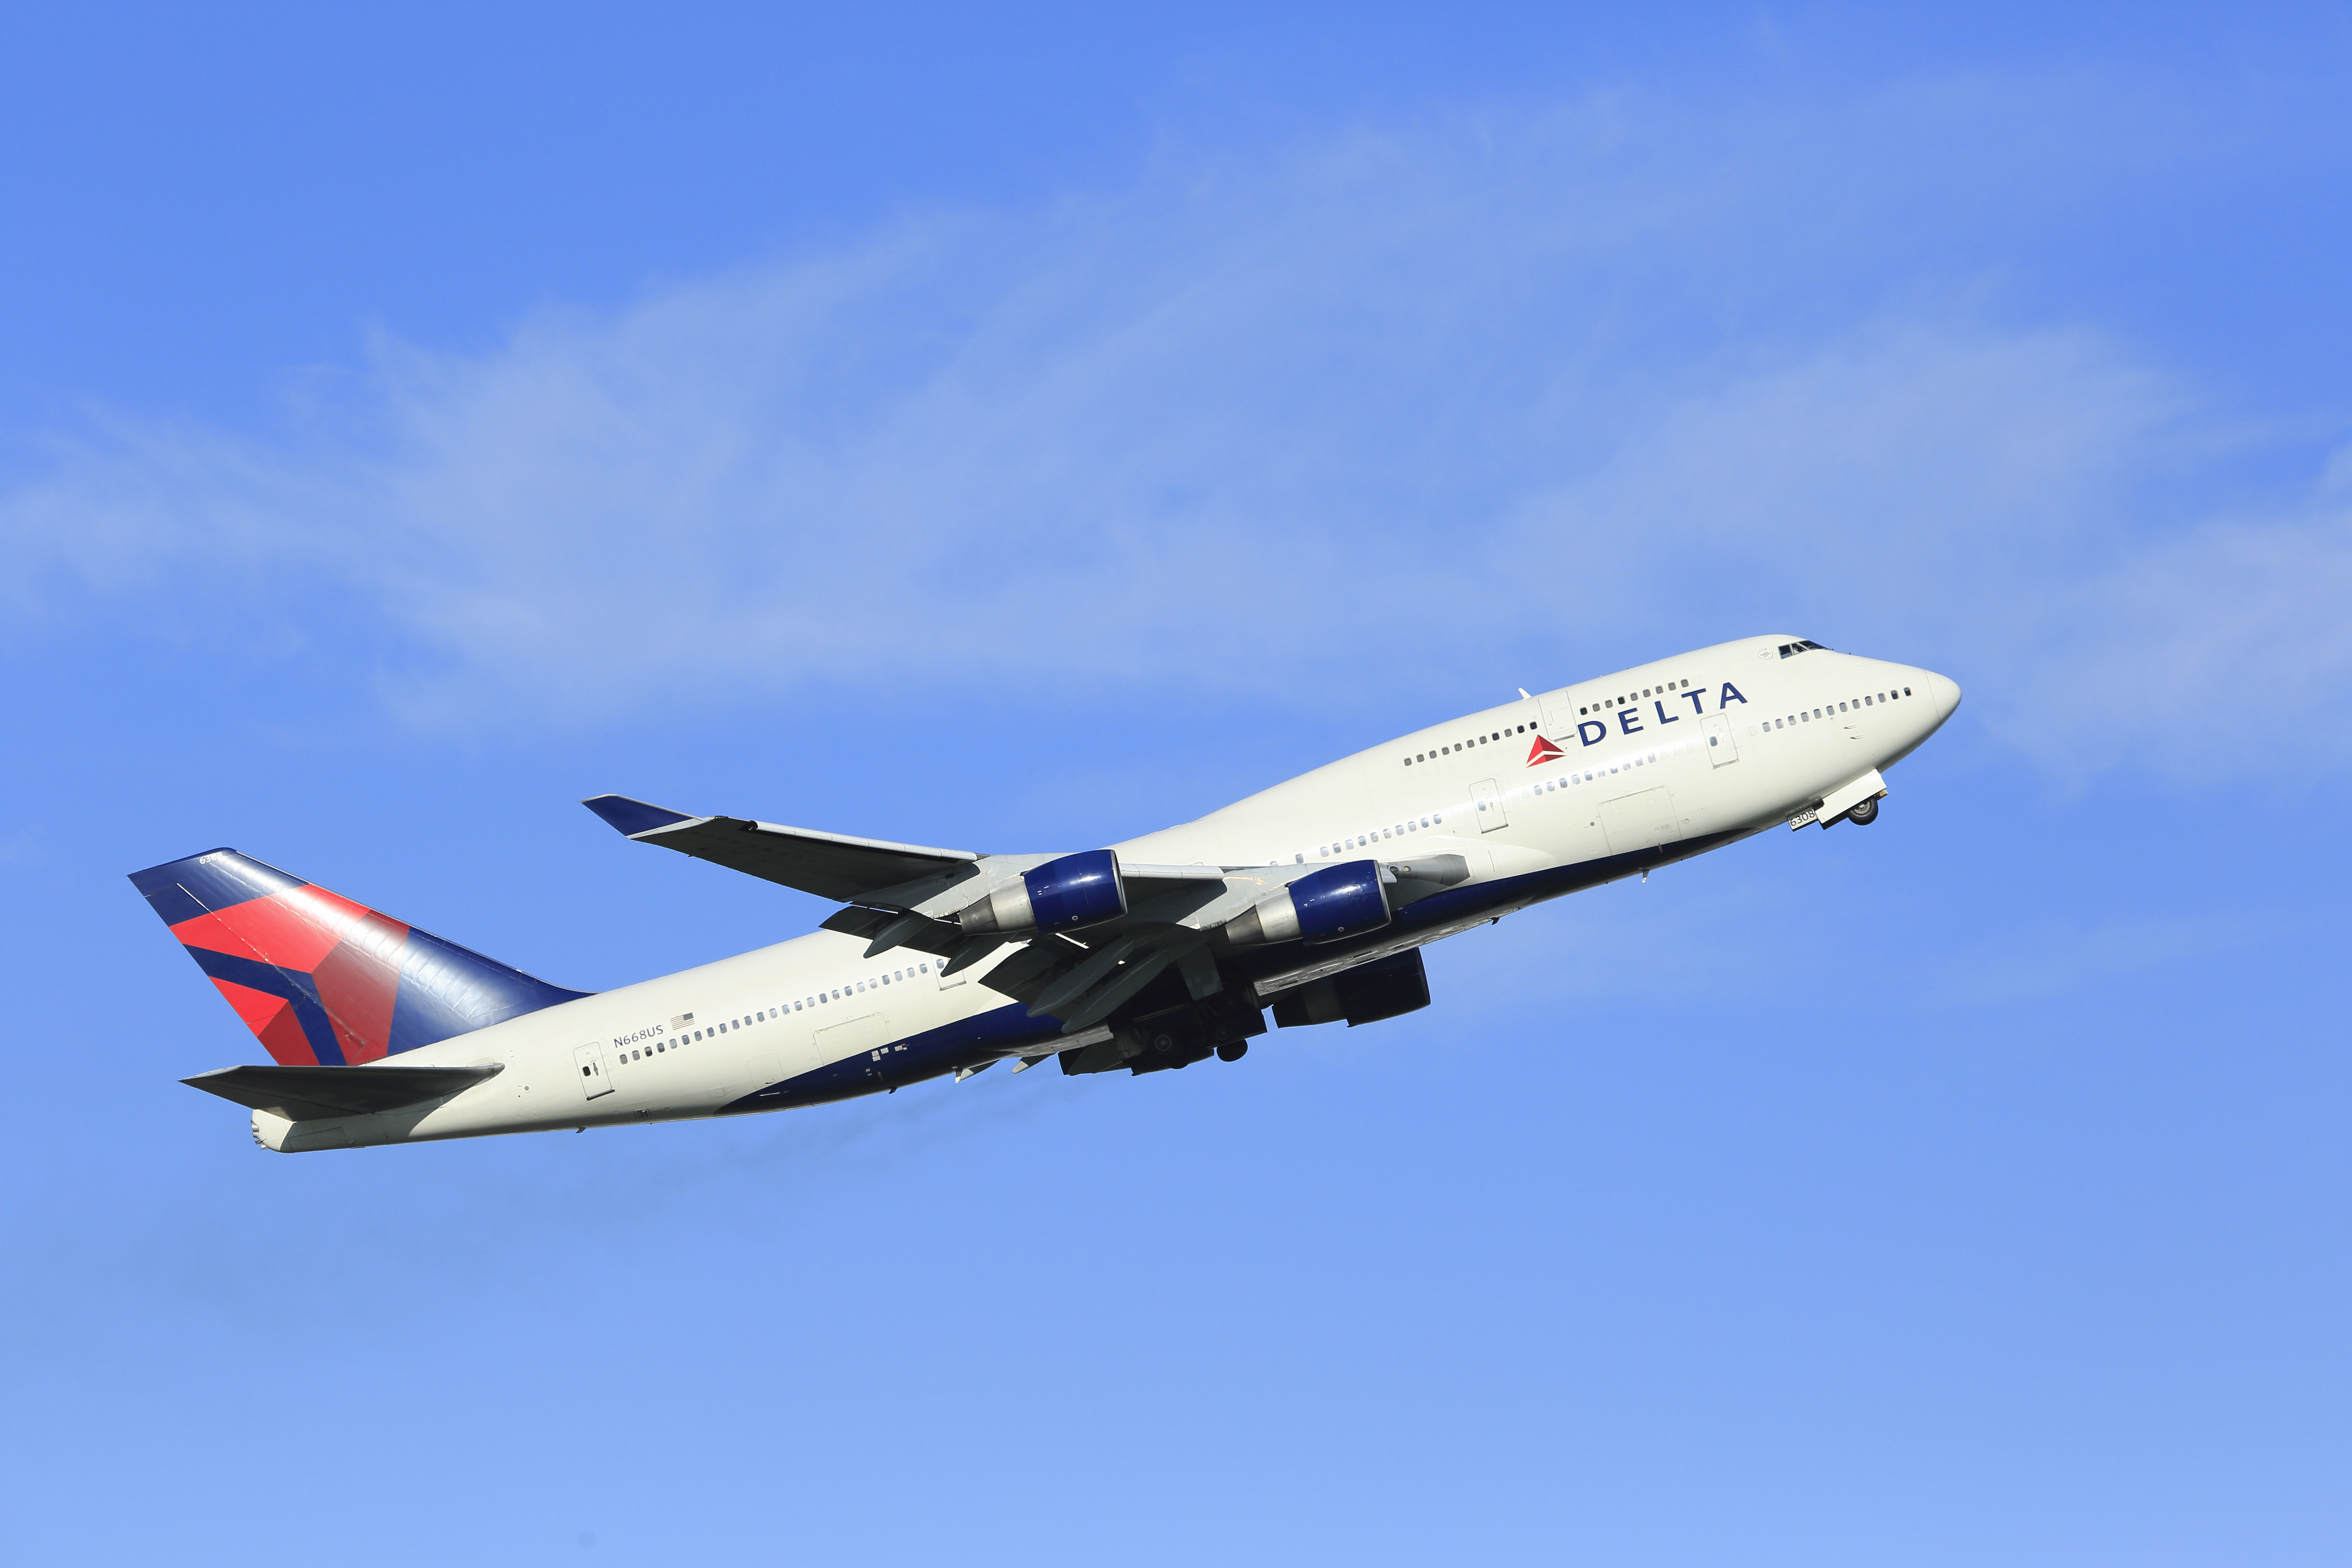 A Delta Airlines plane shown flying in the air.